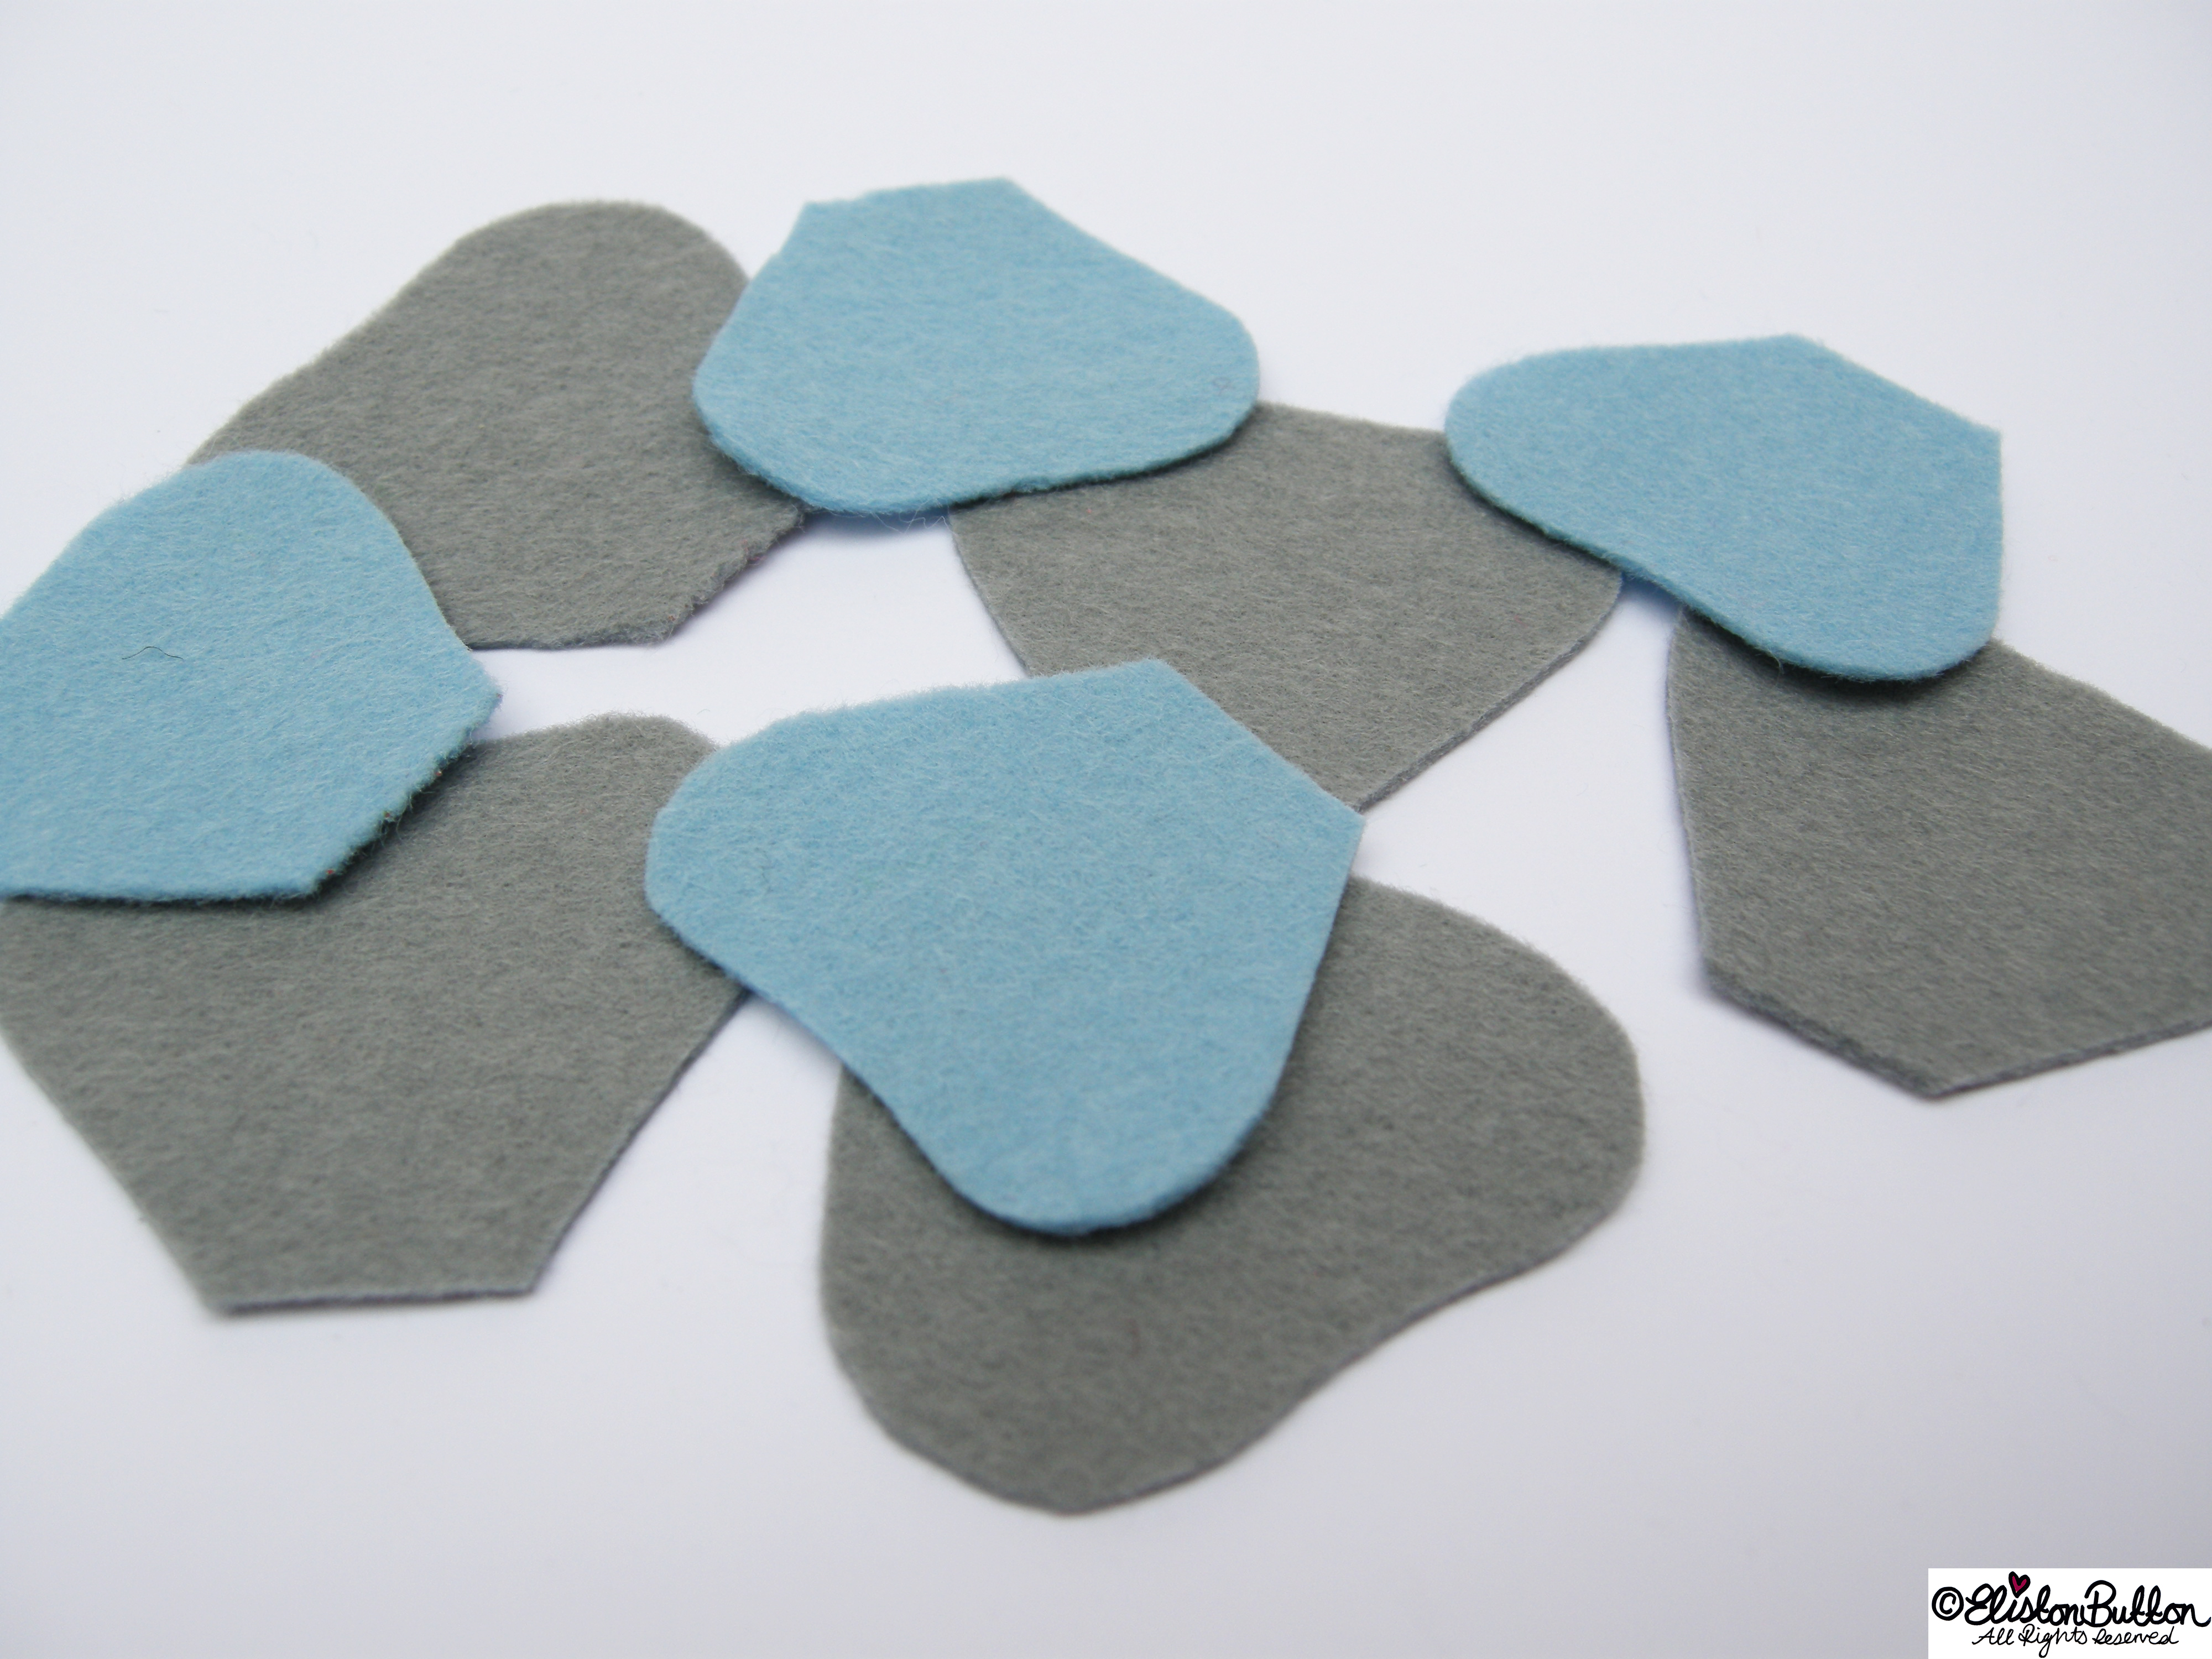 Pastel Blue and Grey Felt Petal Shapes - 27 Before 27 – Aquamarine at www.elistonbutton.com - Eliston Button - That Crafty Kid – Art, Design, Craft & Adventure.